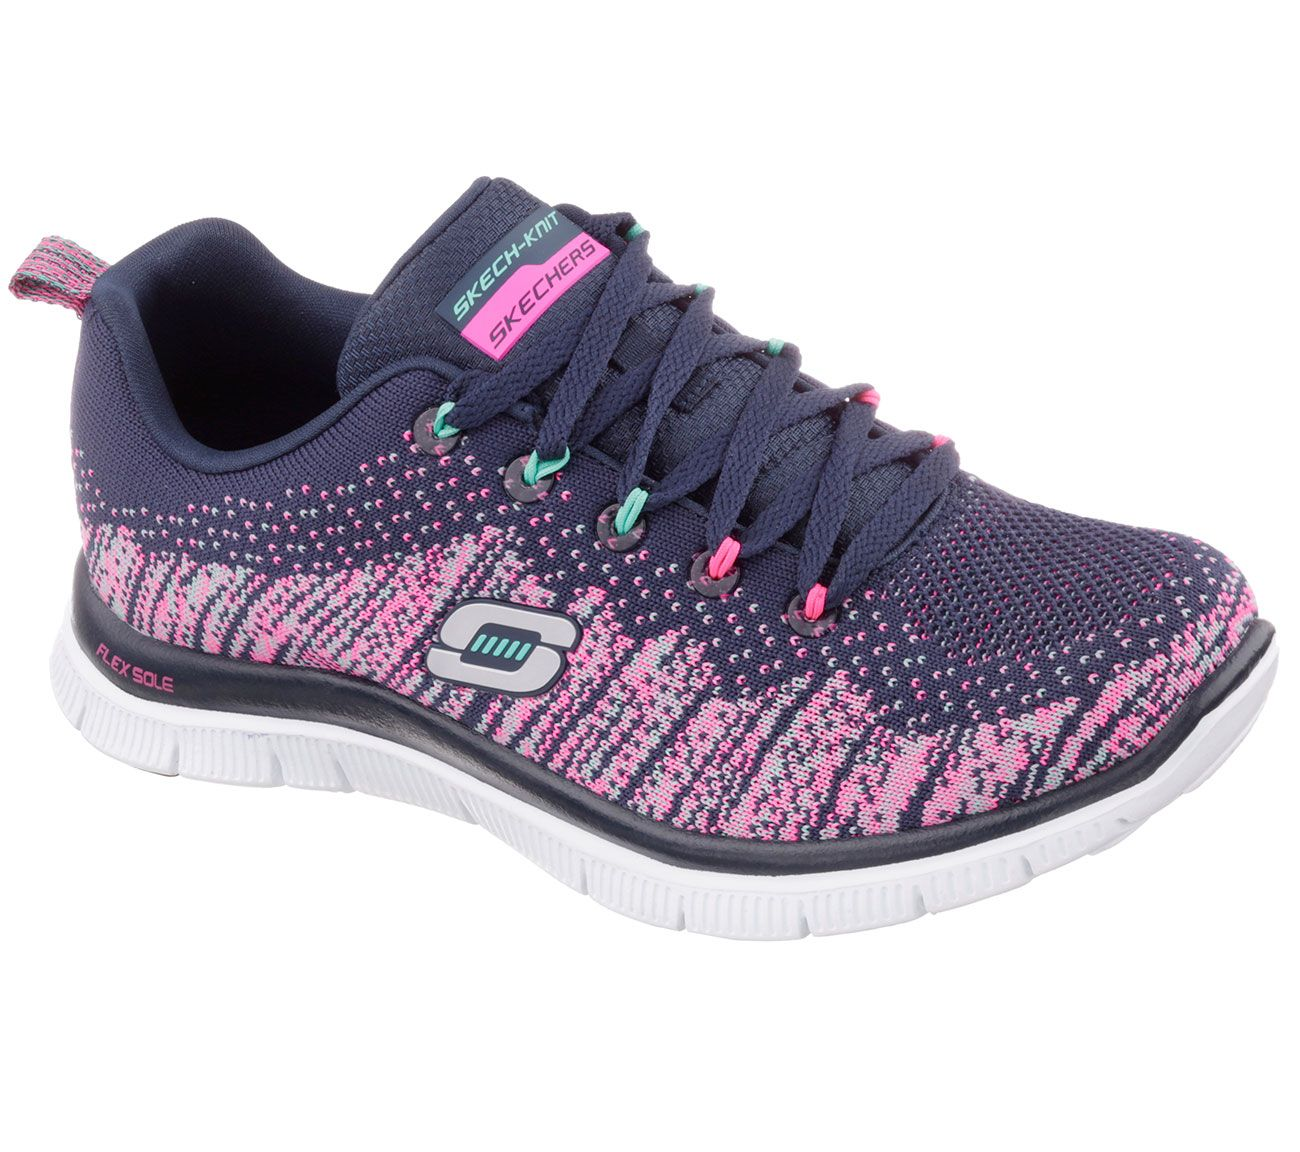 New Listing Skechers Flex Appeal Talent Flair Women Navy Training Shoes